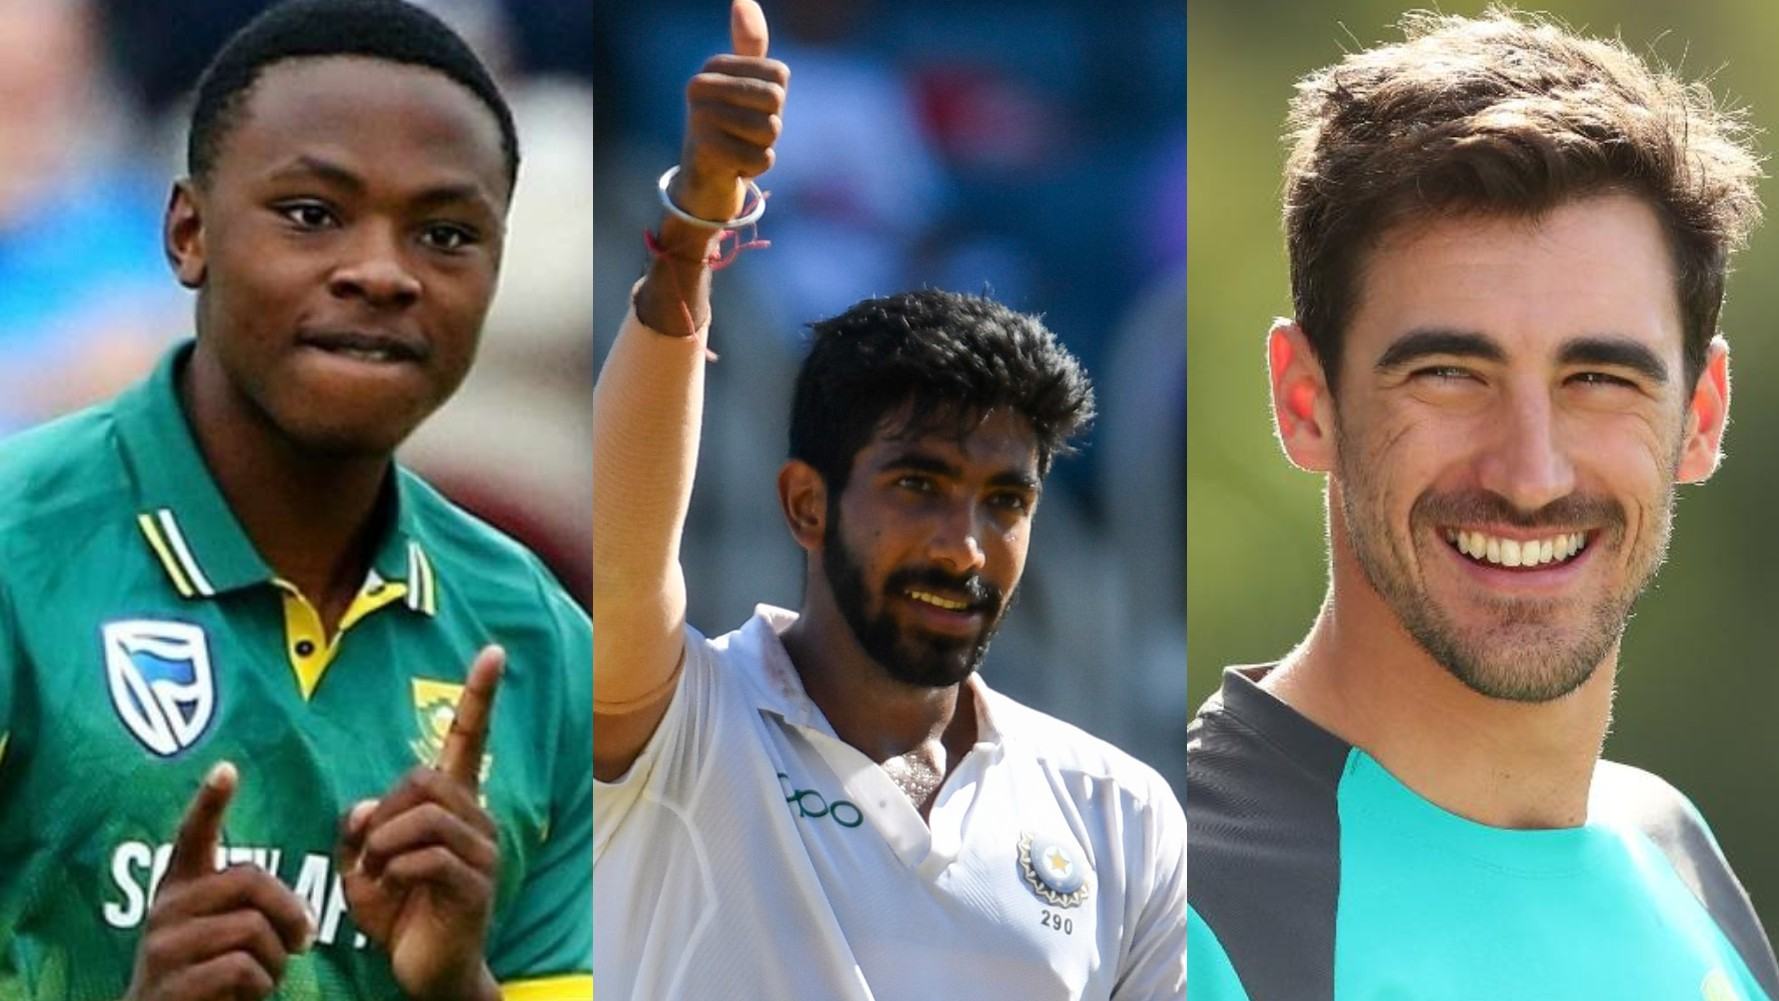 5 fast bowlers who can easily walk into any team in any format